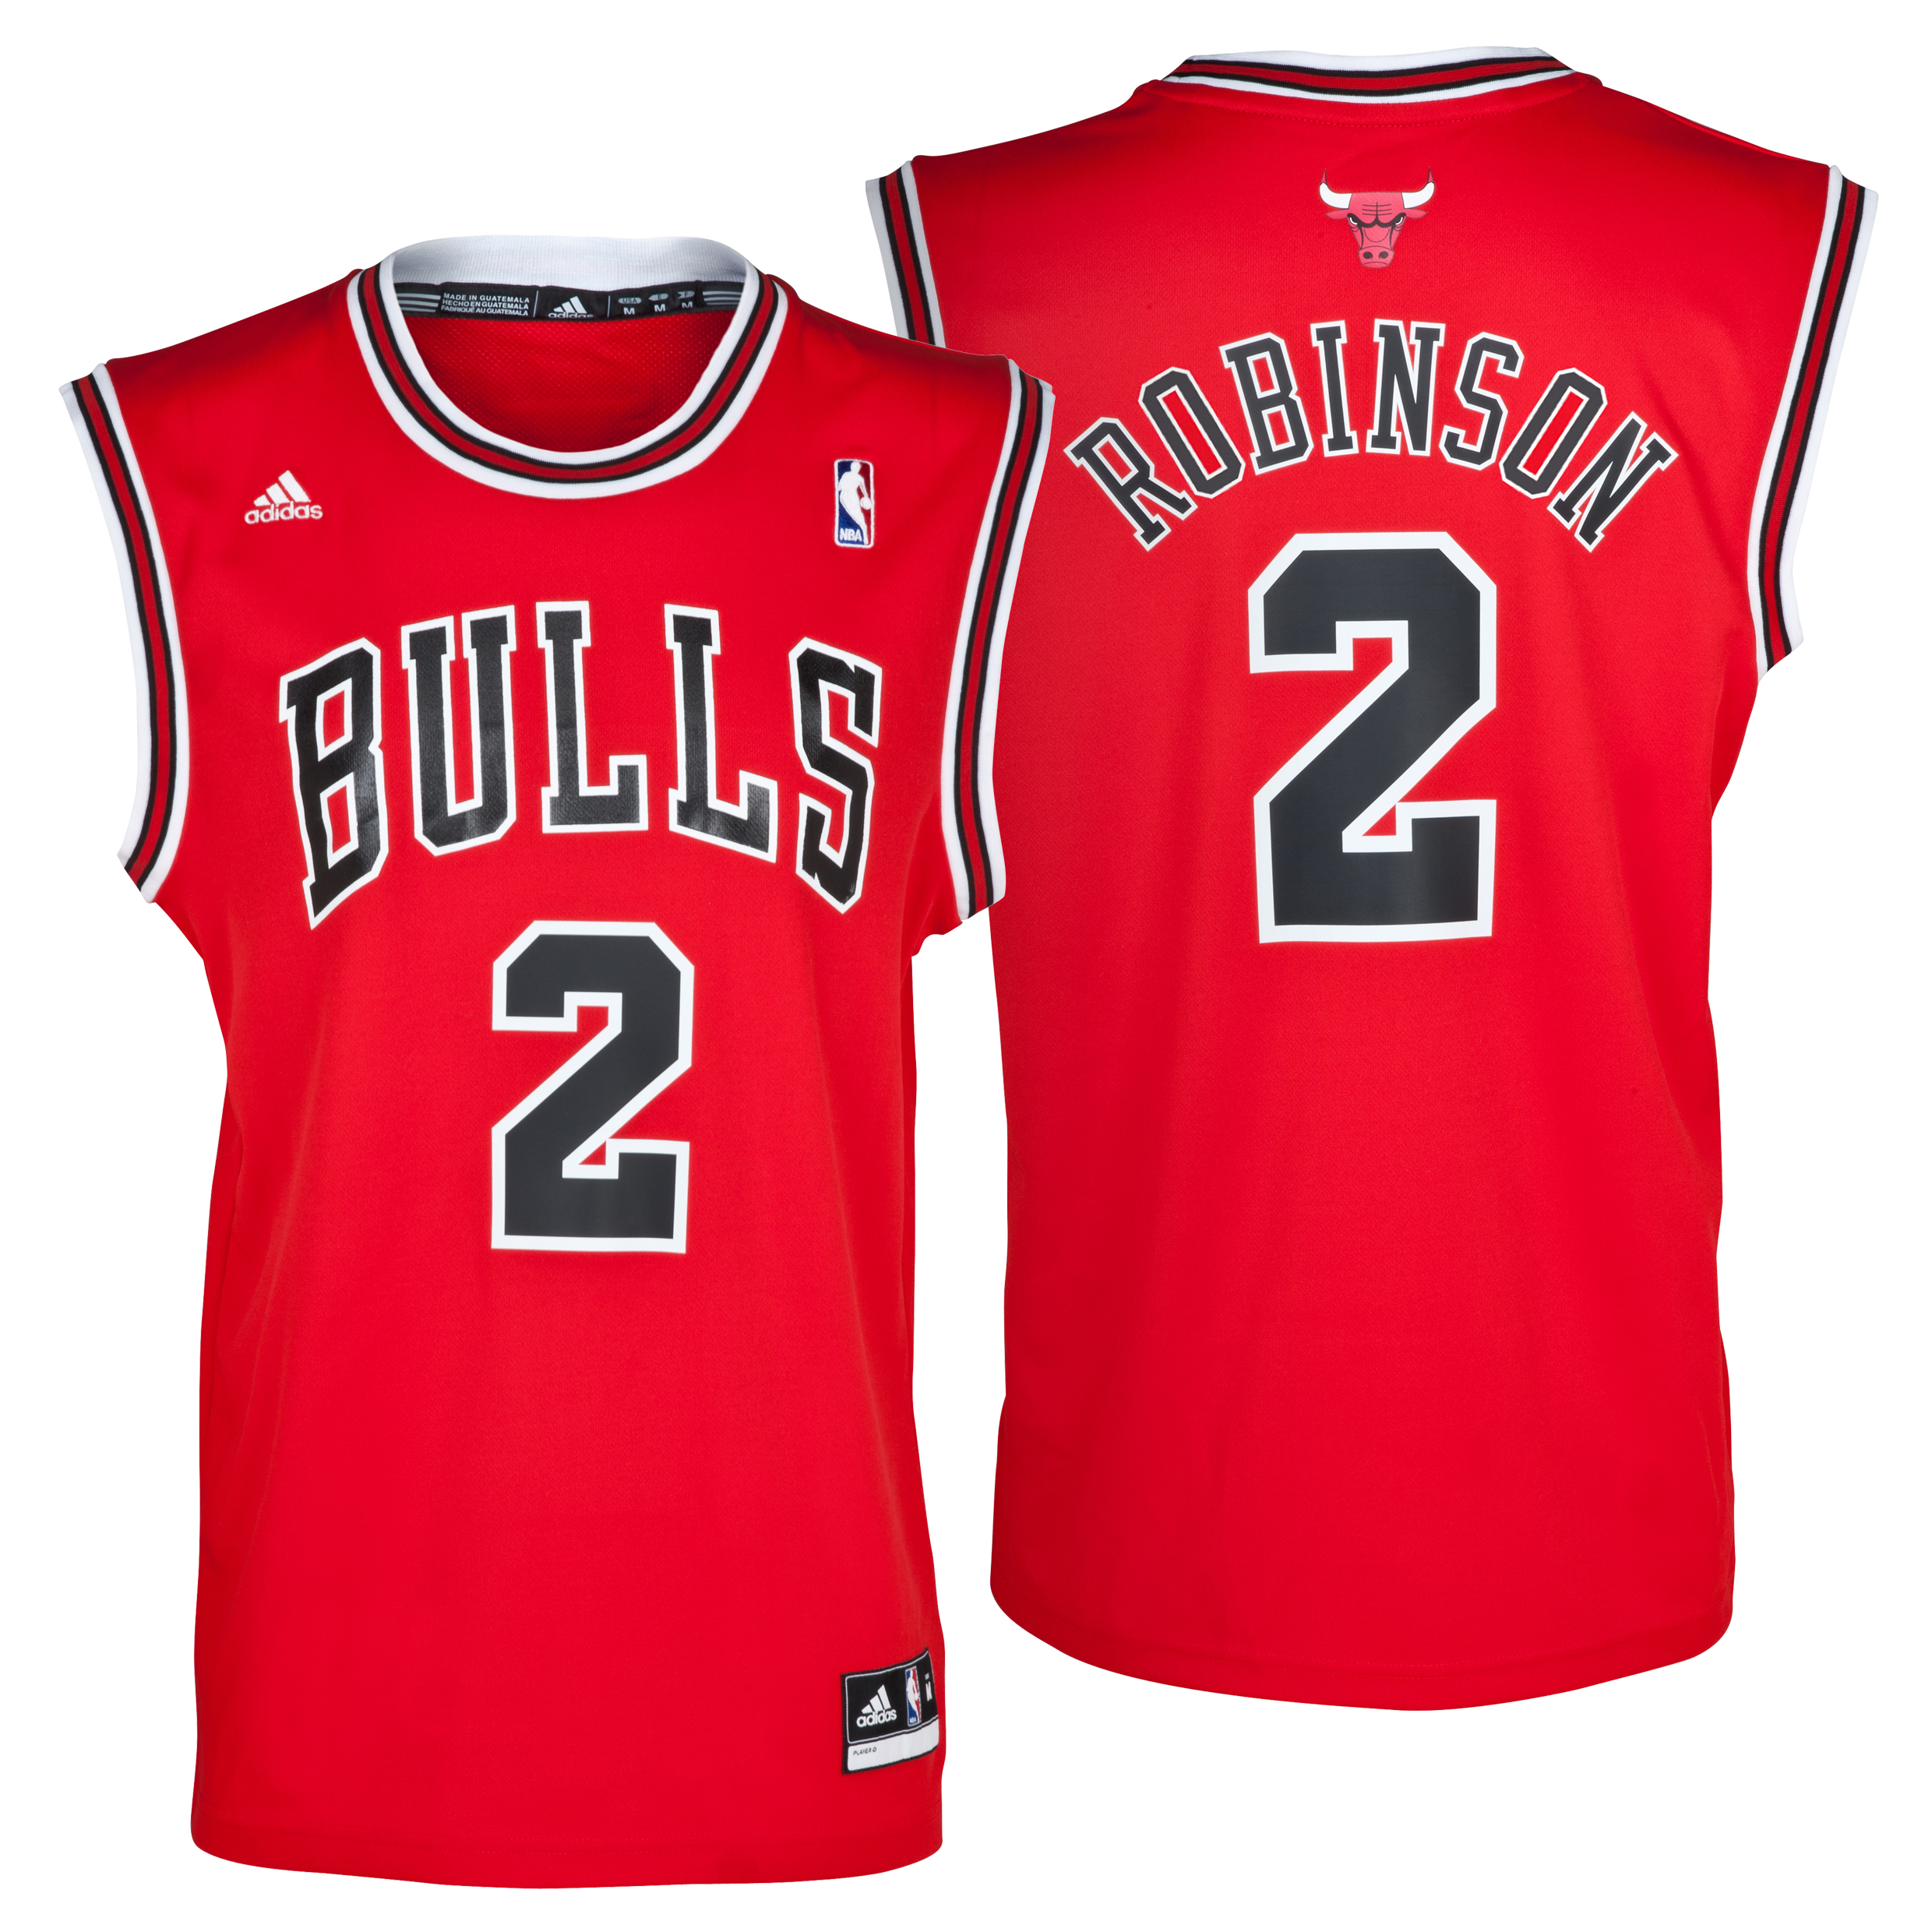 Chicago Bulls Road Replica Jersey  Nate Robinson  Mens